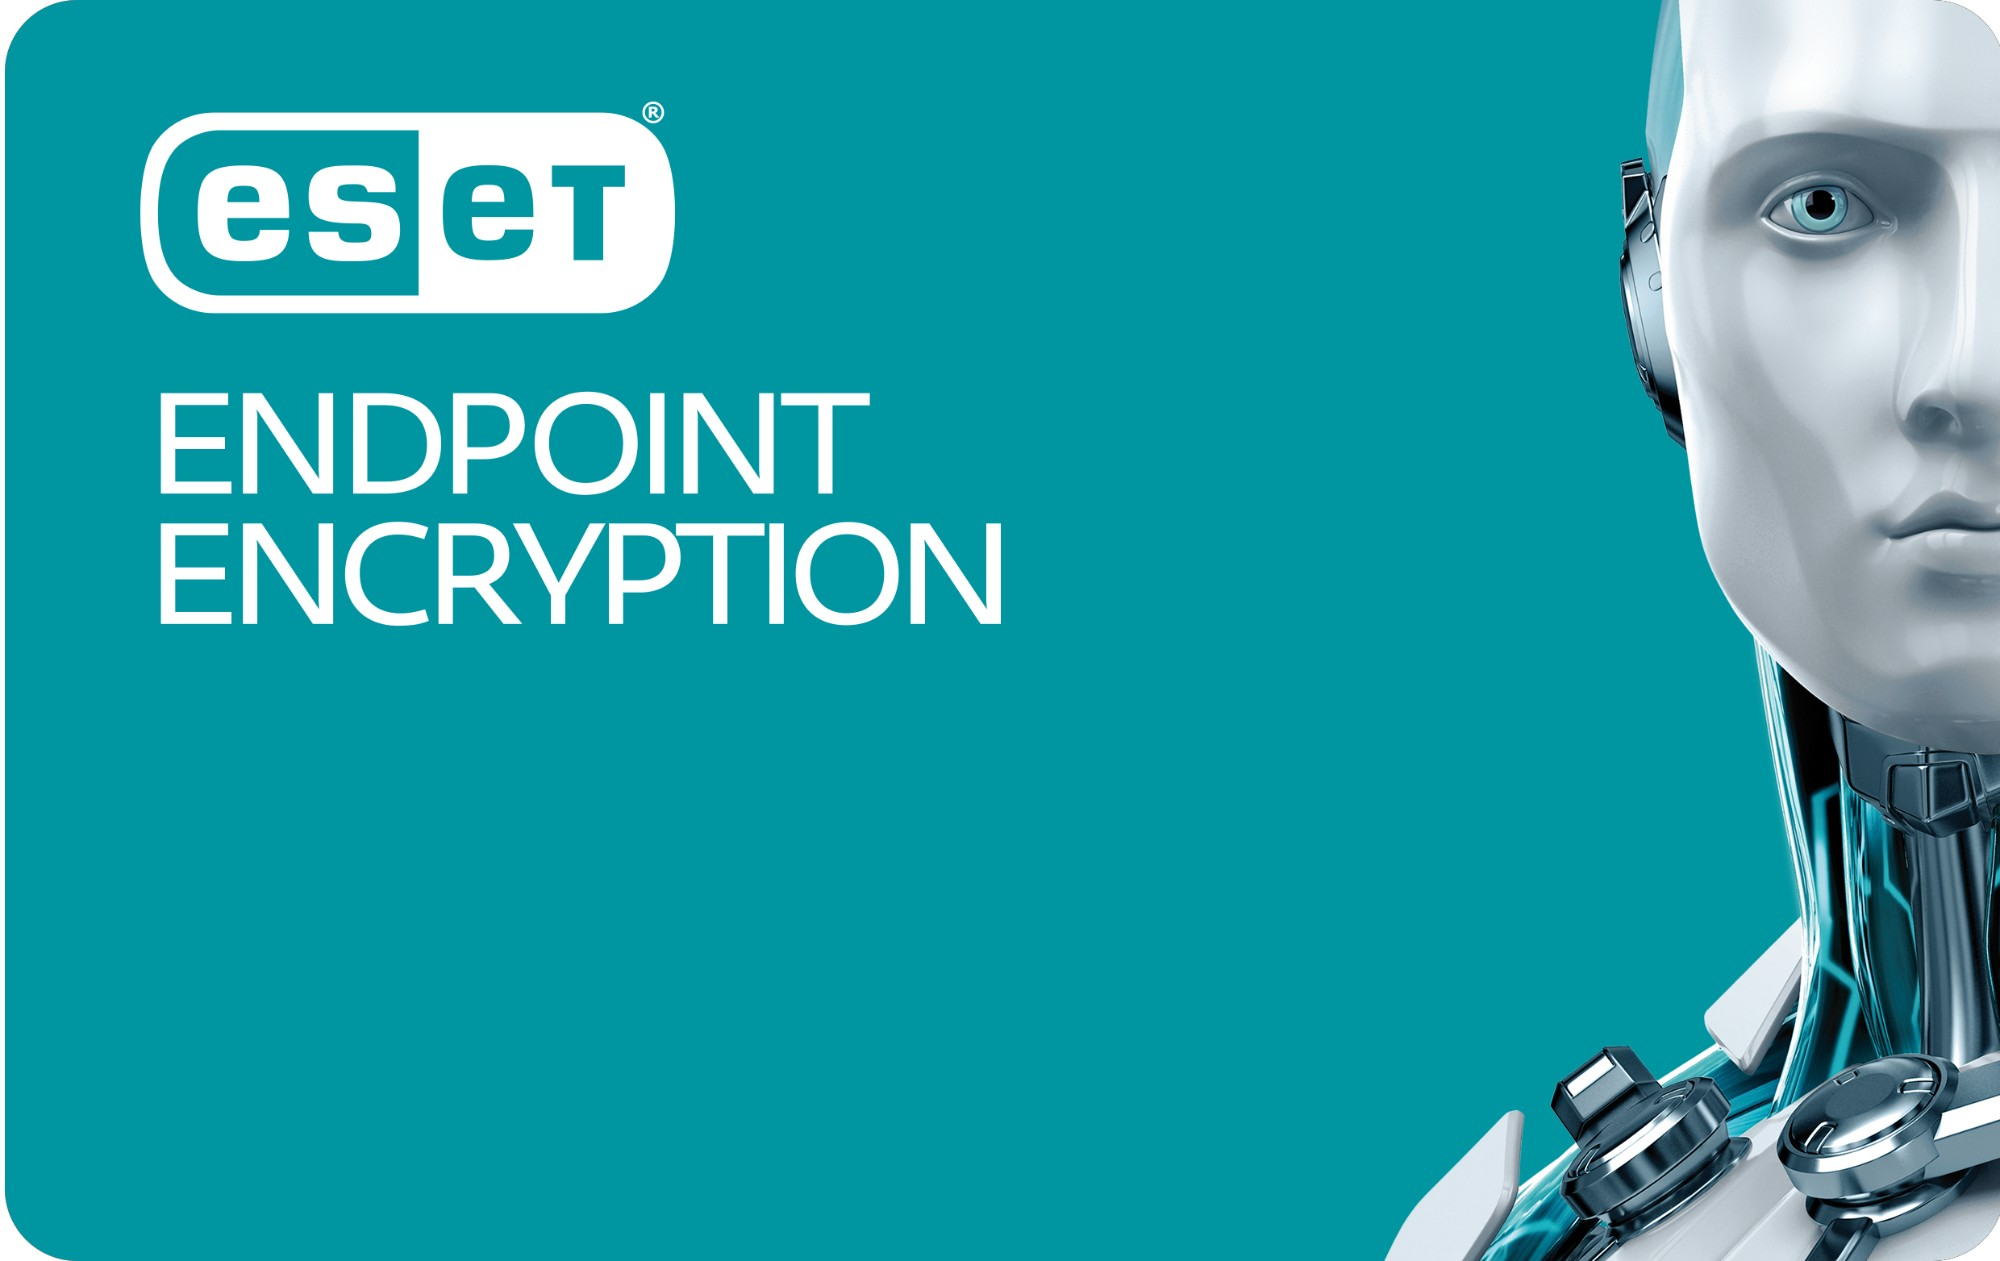 ESET Endpoint Encryption Pro 2000 - 4999 User Government (GOV) license 2000 - 4999 license(s) 3 year(s)